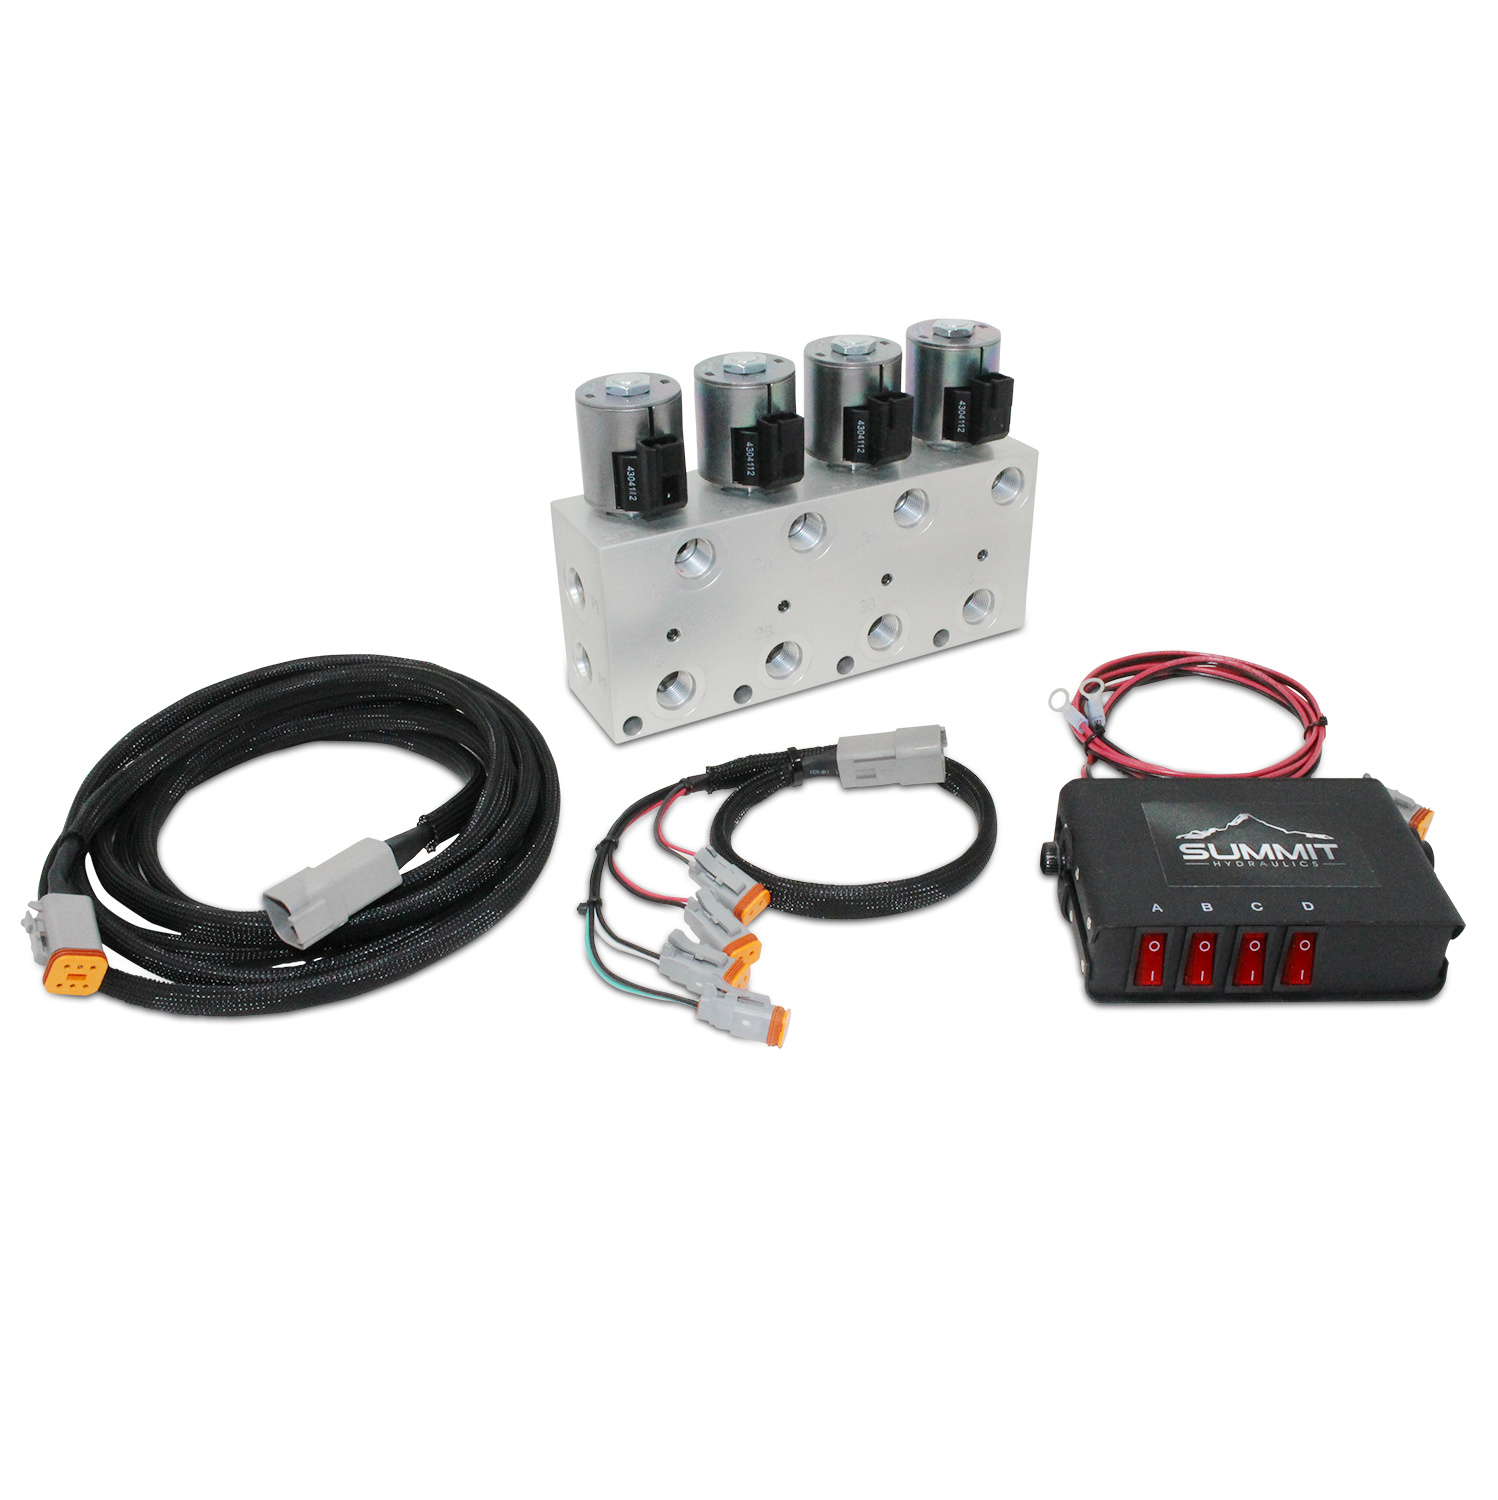 hight resolution of hm4 08 nsbc hm4 center hm4 switchbox